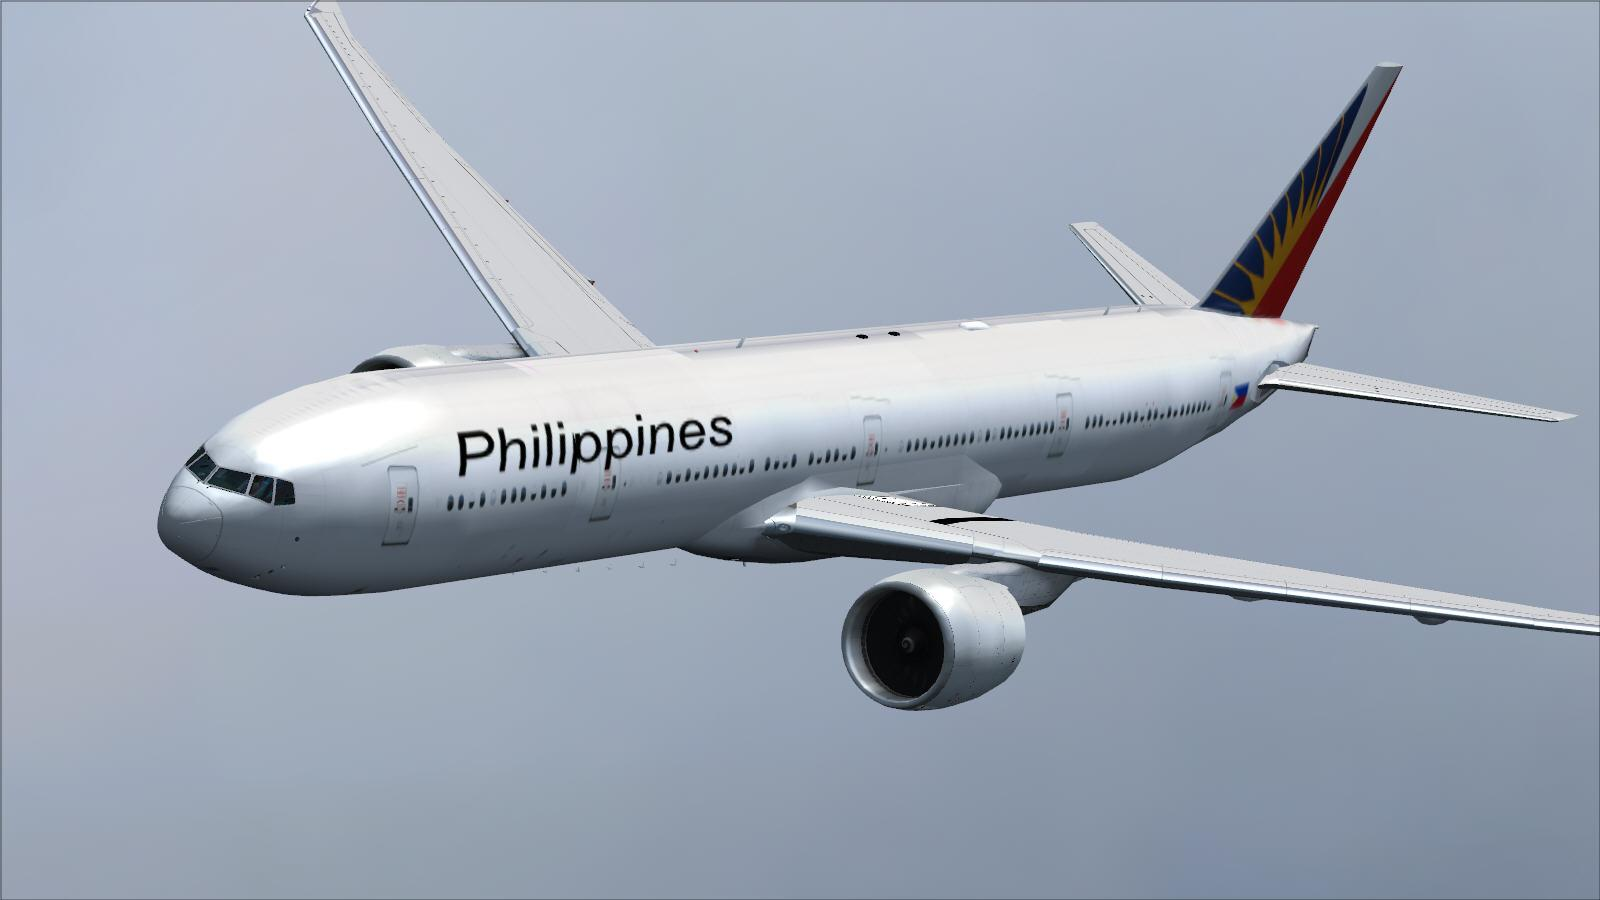 T 201 L 201 Charger Posky Boeing 777 300er Philippine Airlines Fsx